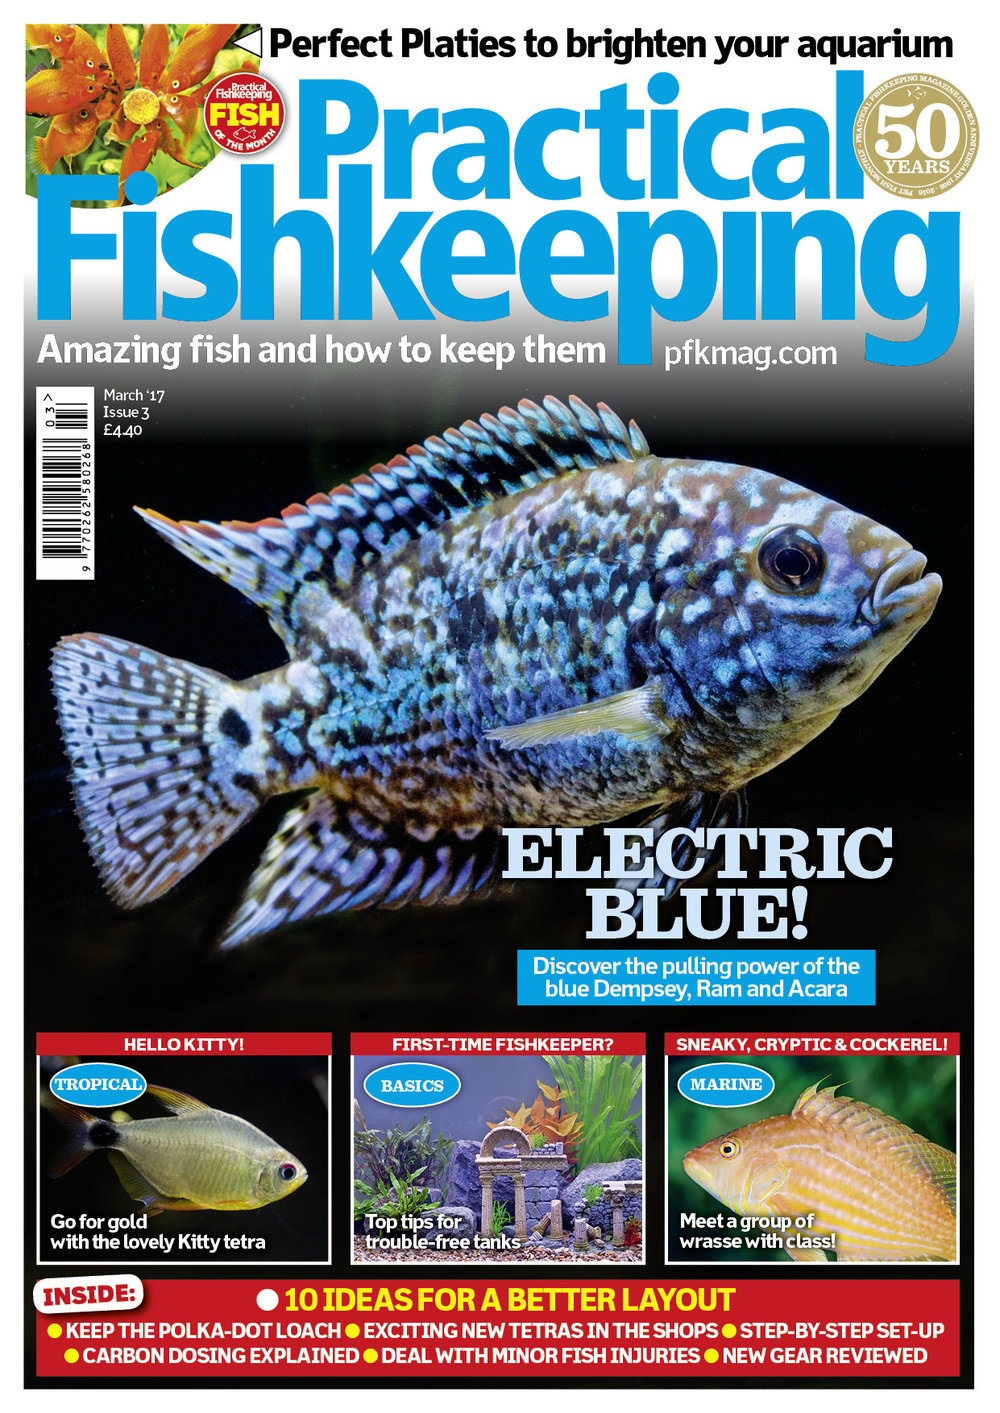 Our March 2017 issue is packed full of inspiration. We suggest perfect platies for your aquarium. Discover the pulling power of the blue Dempsey, Ram and Acara. Meet a group of wrasse with class and offer top tips to first-time fishkeepers.